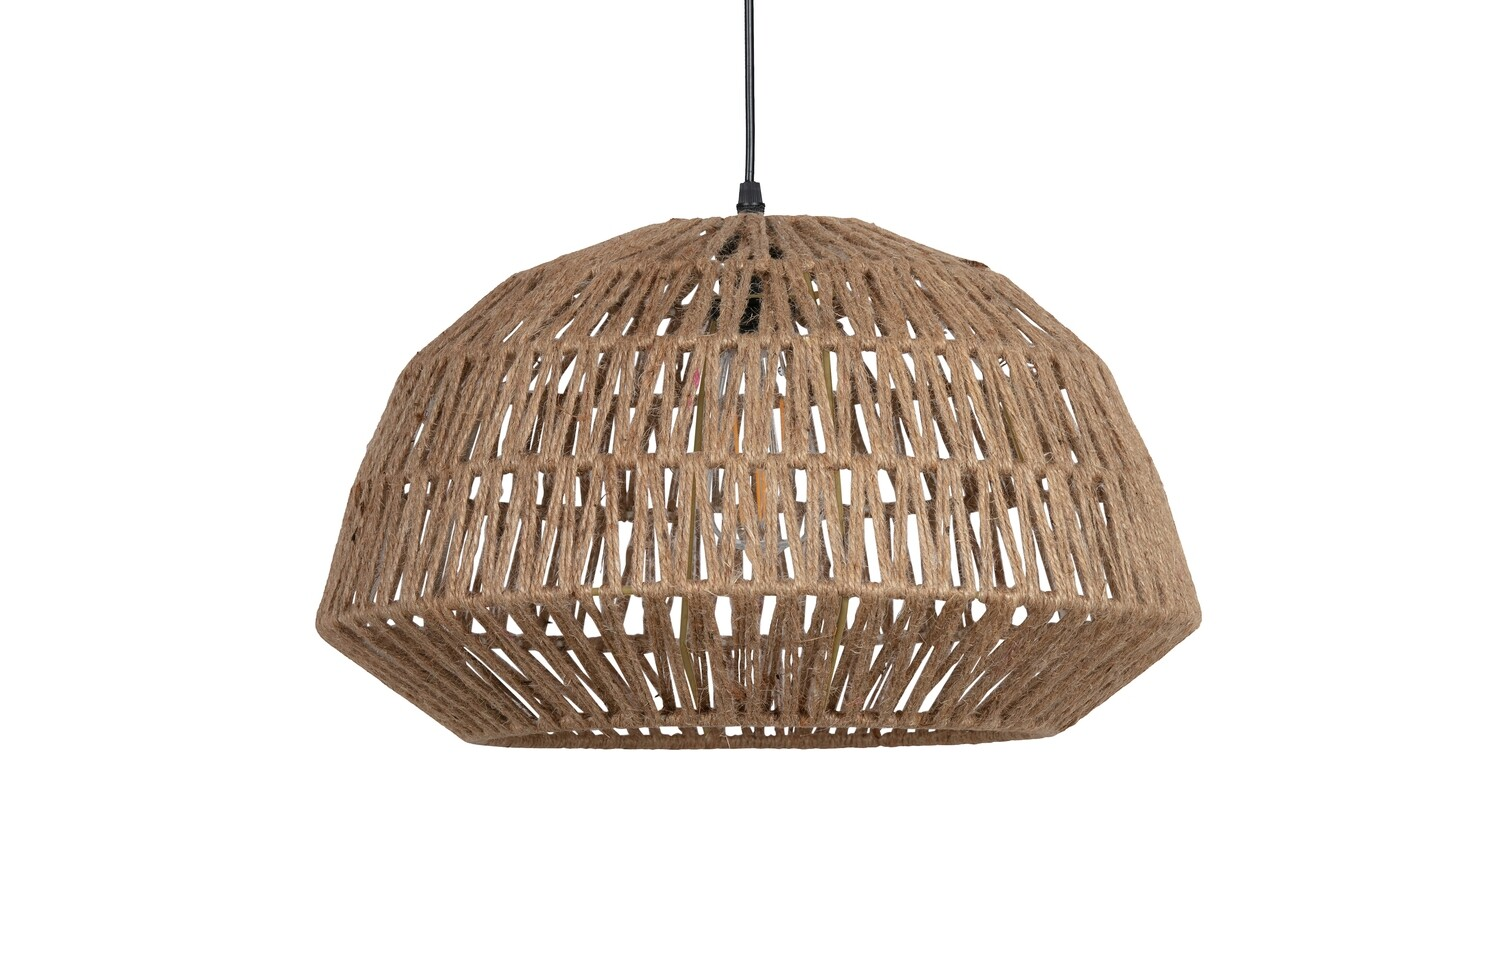 KACE HANGING LAMP JUTE NATURAL Ø45CM